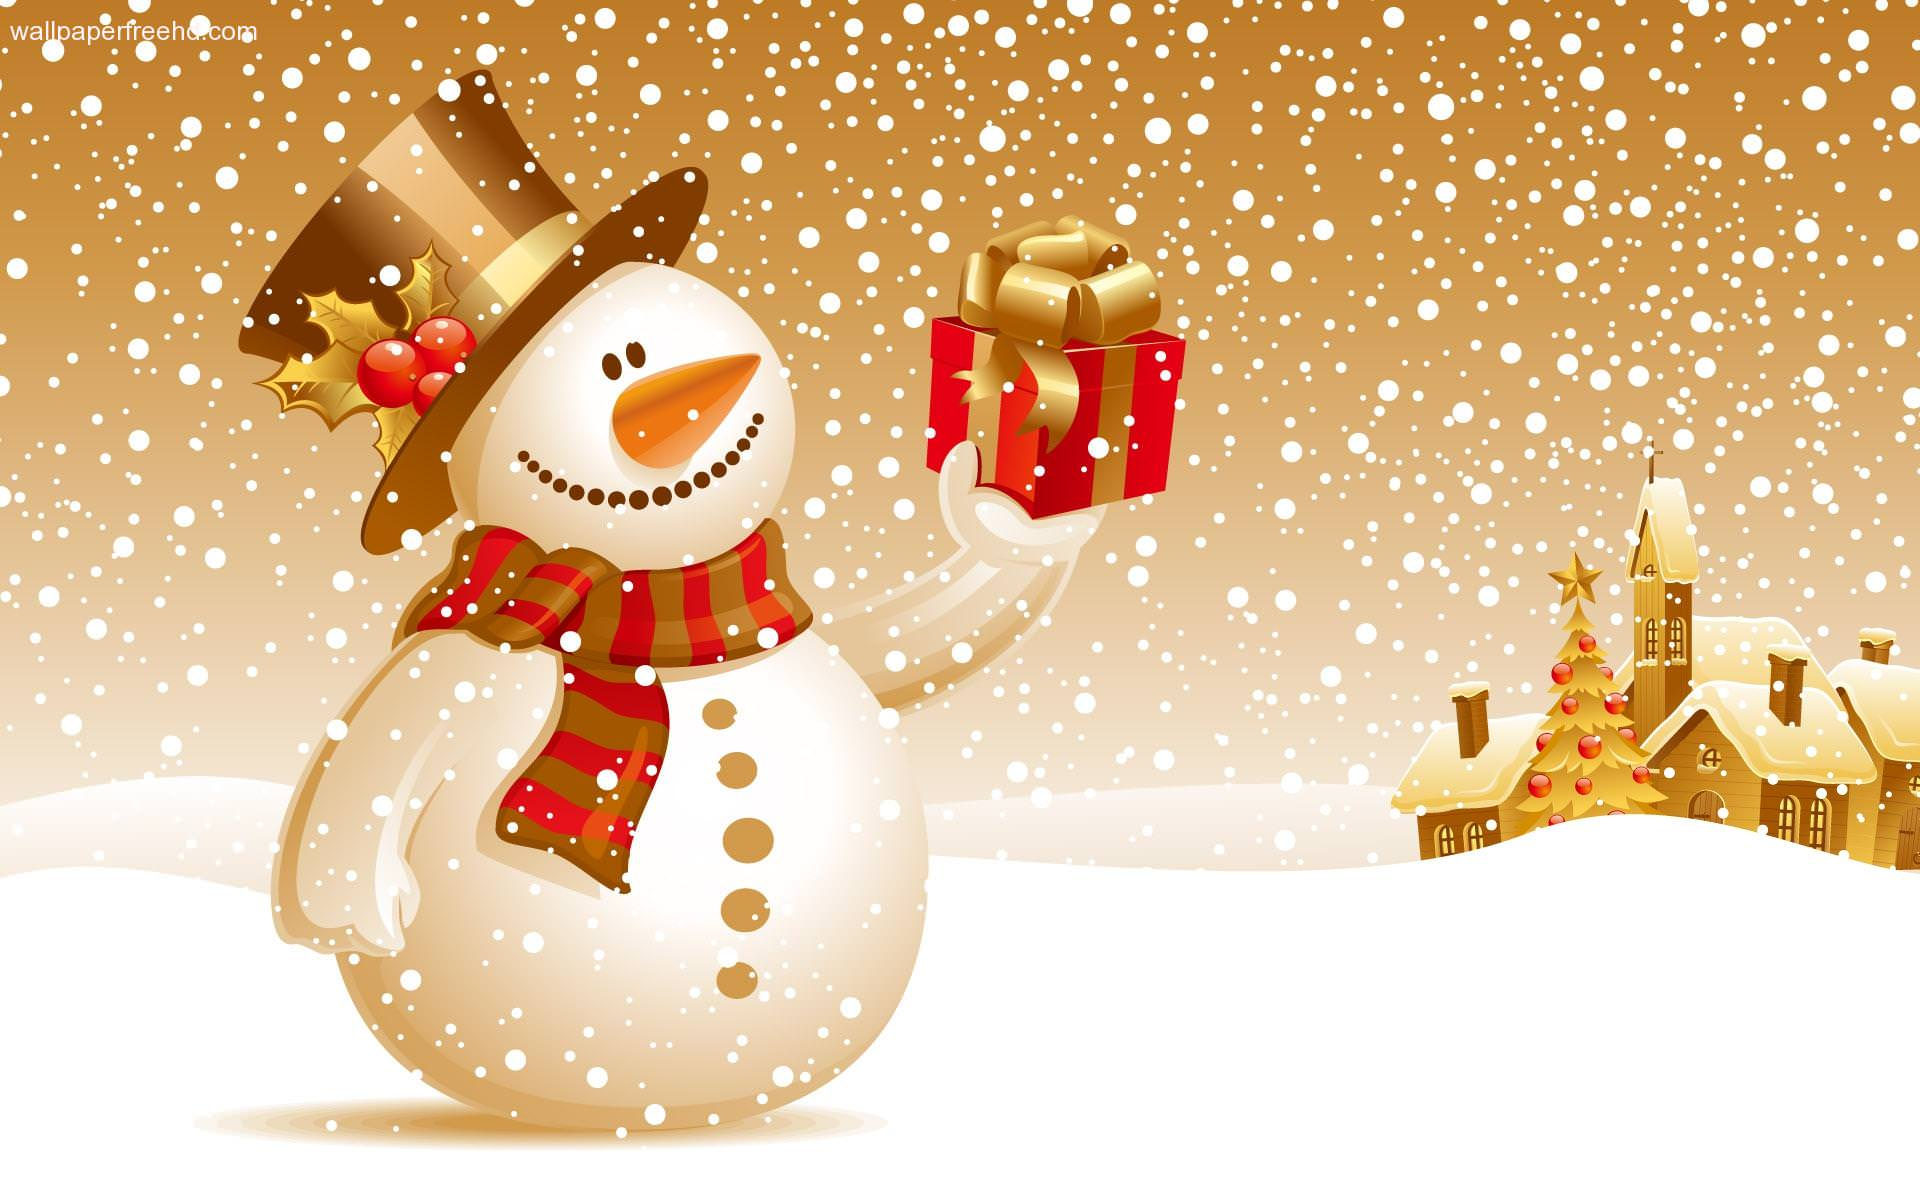 Snowman Holiday Wallpaper